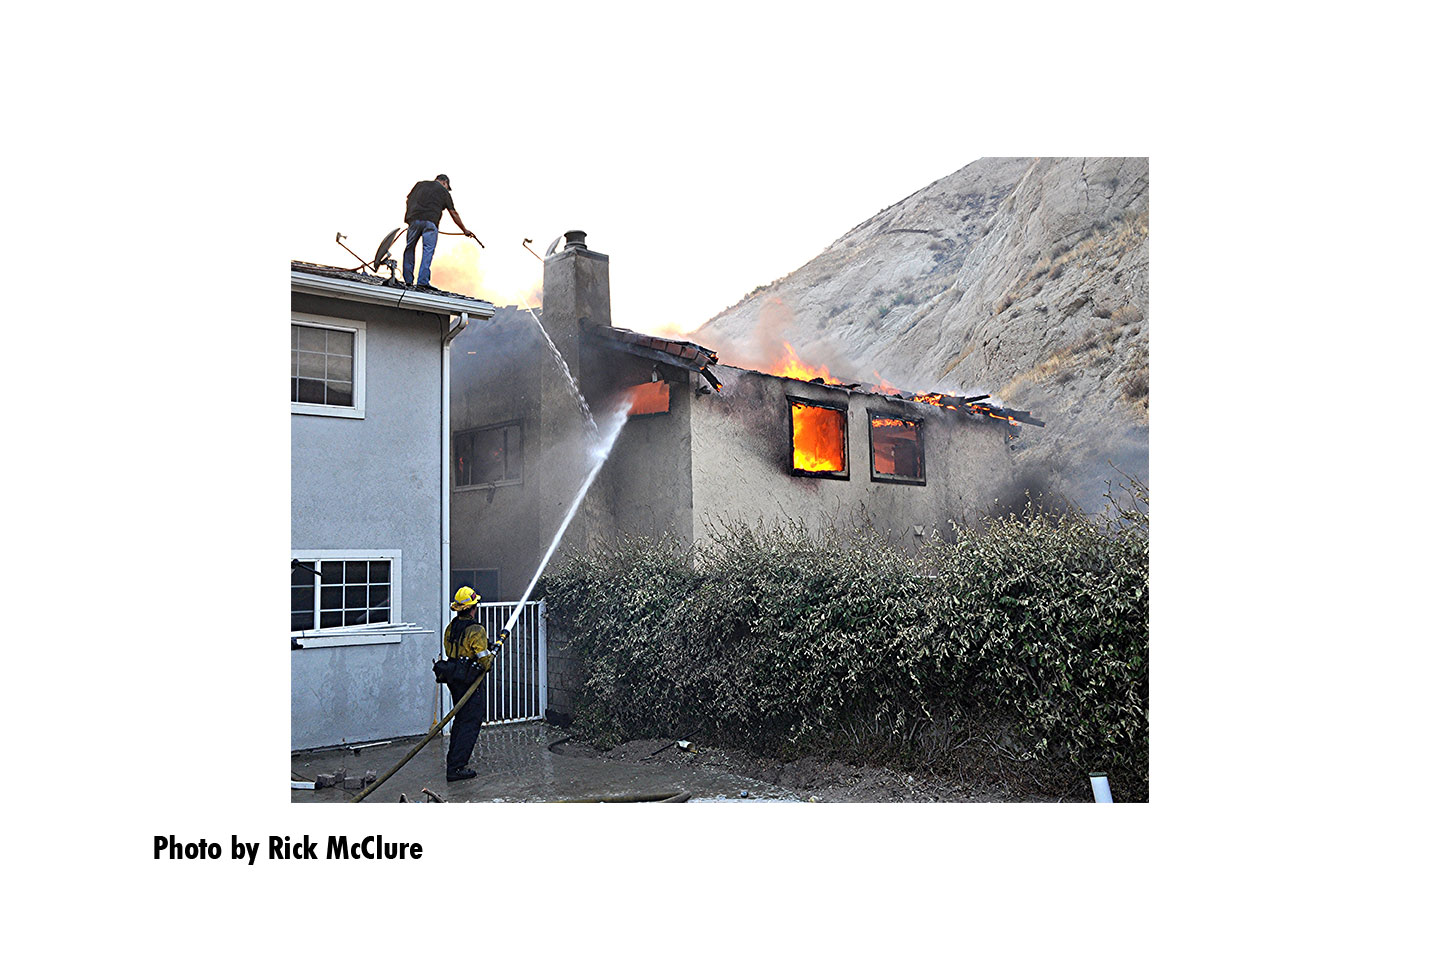 At the Tick Fire, firefighters direct a hosestream into a burning building